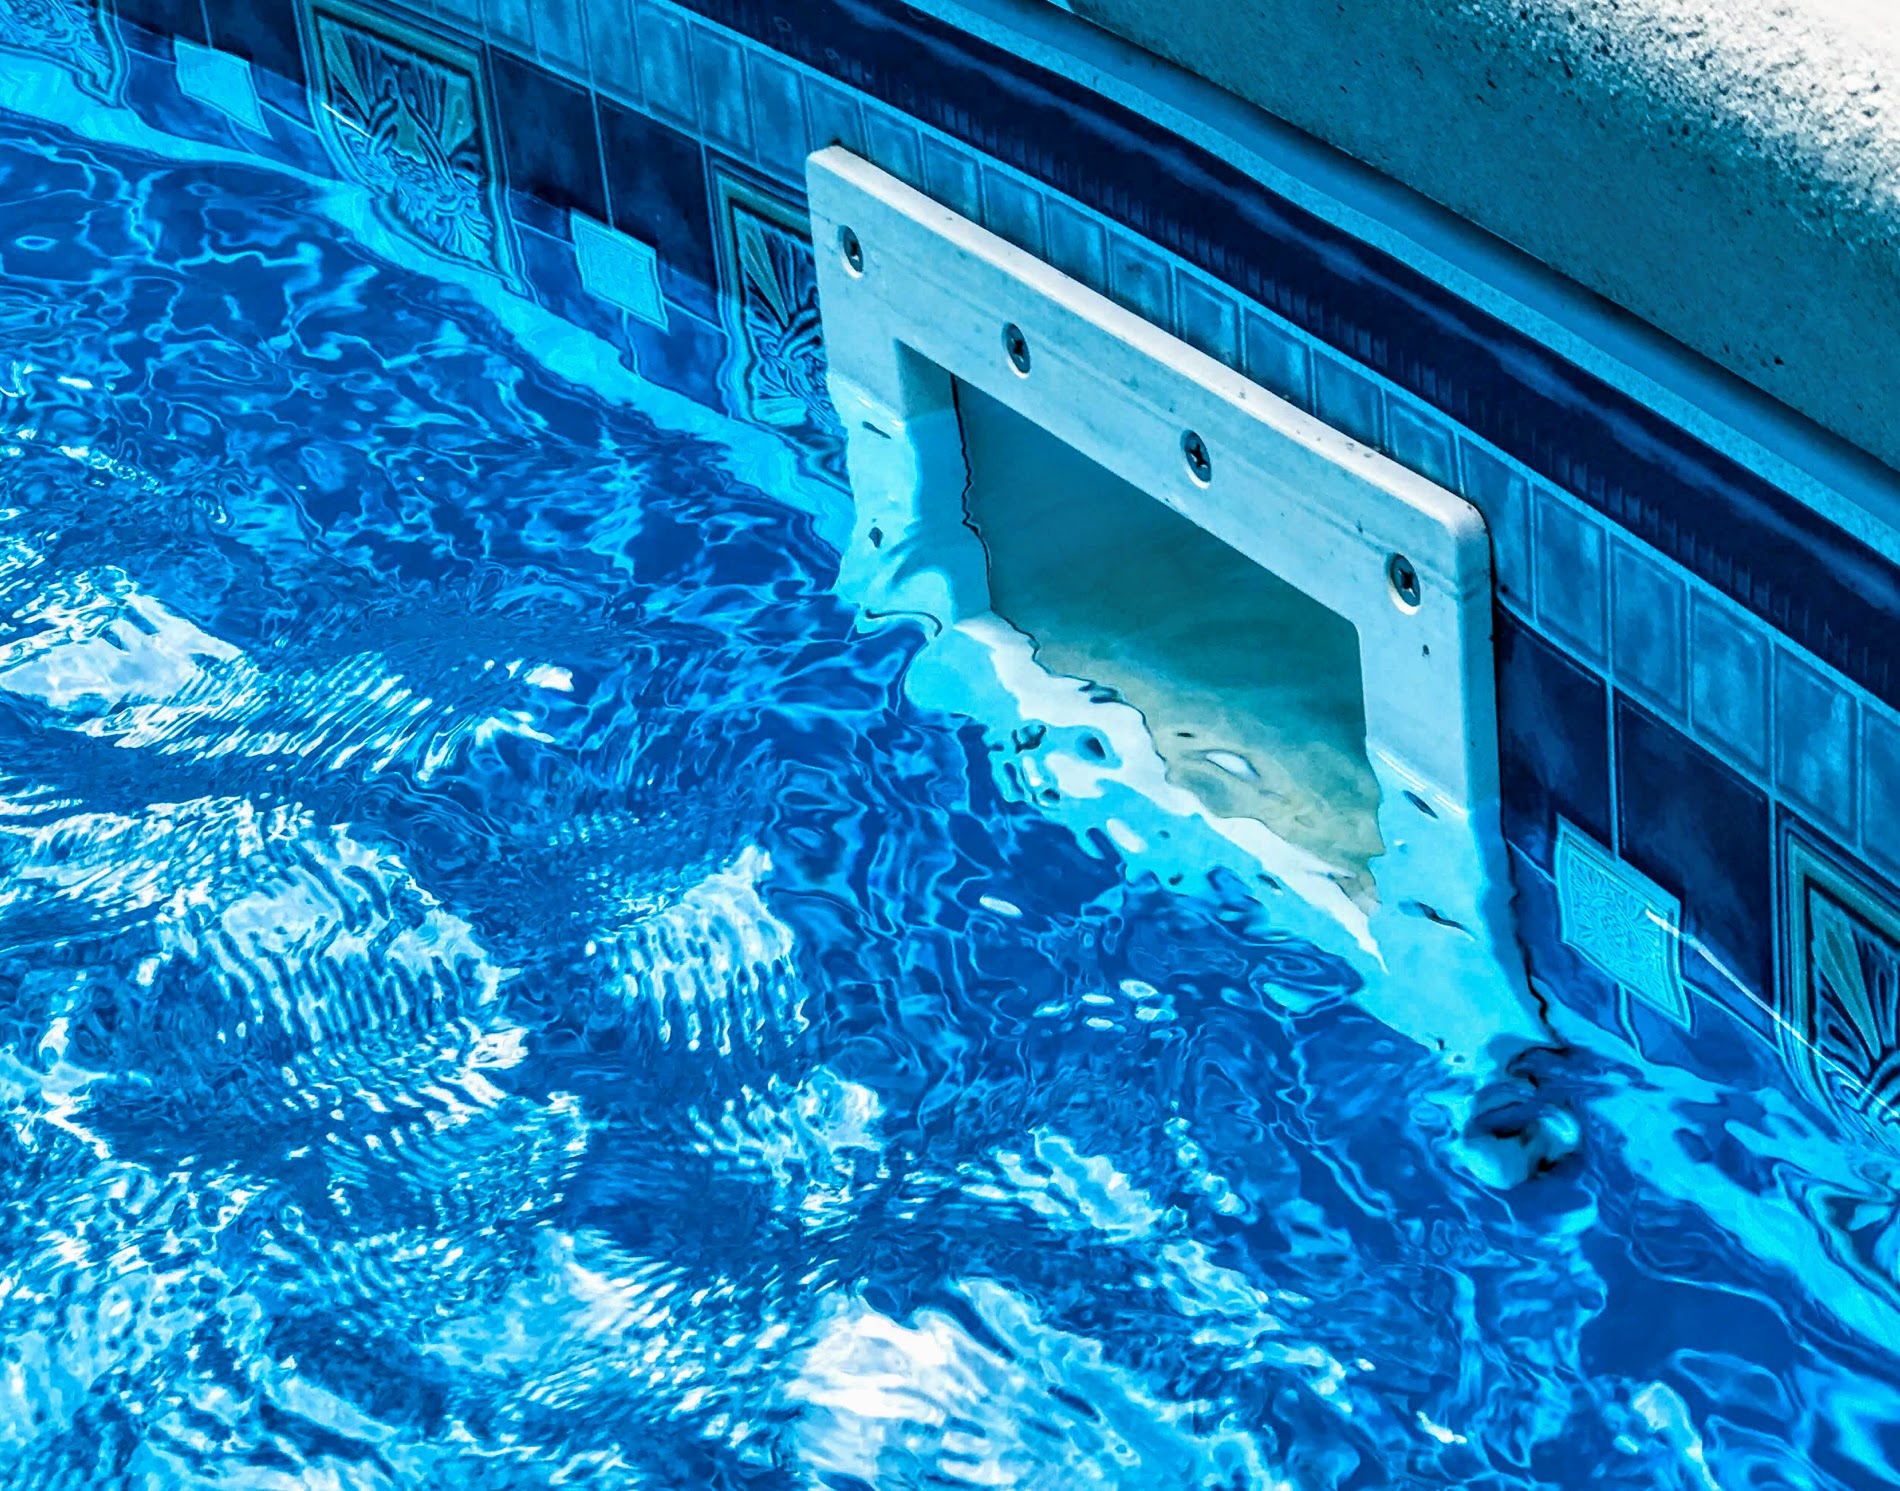 Swimming Pool Maintenance Guide - Tips and Tricks by Real Pool Owners